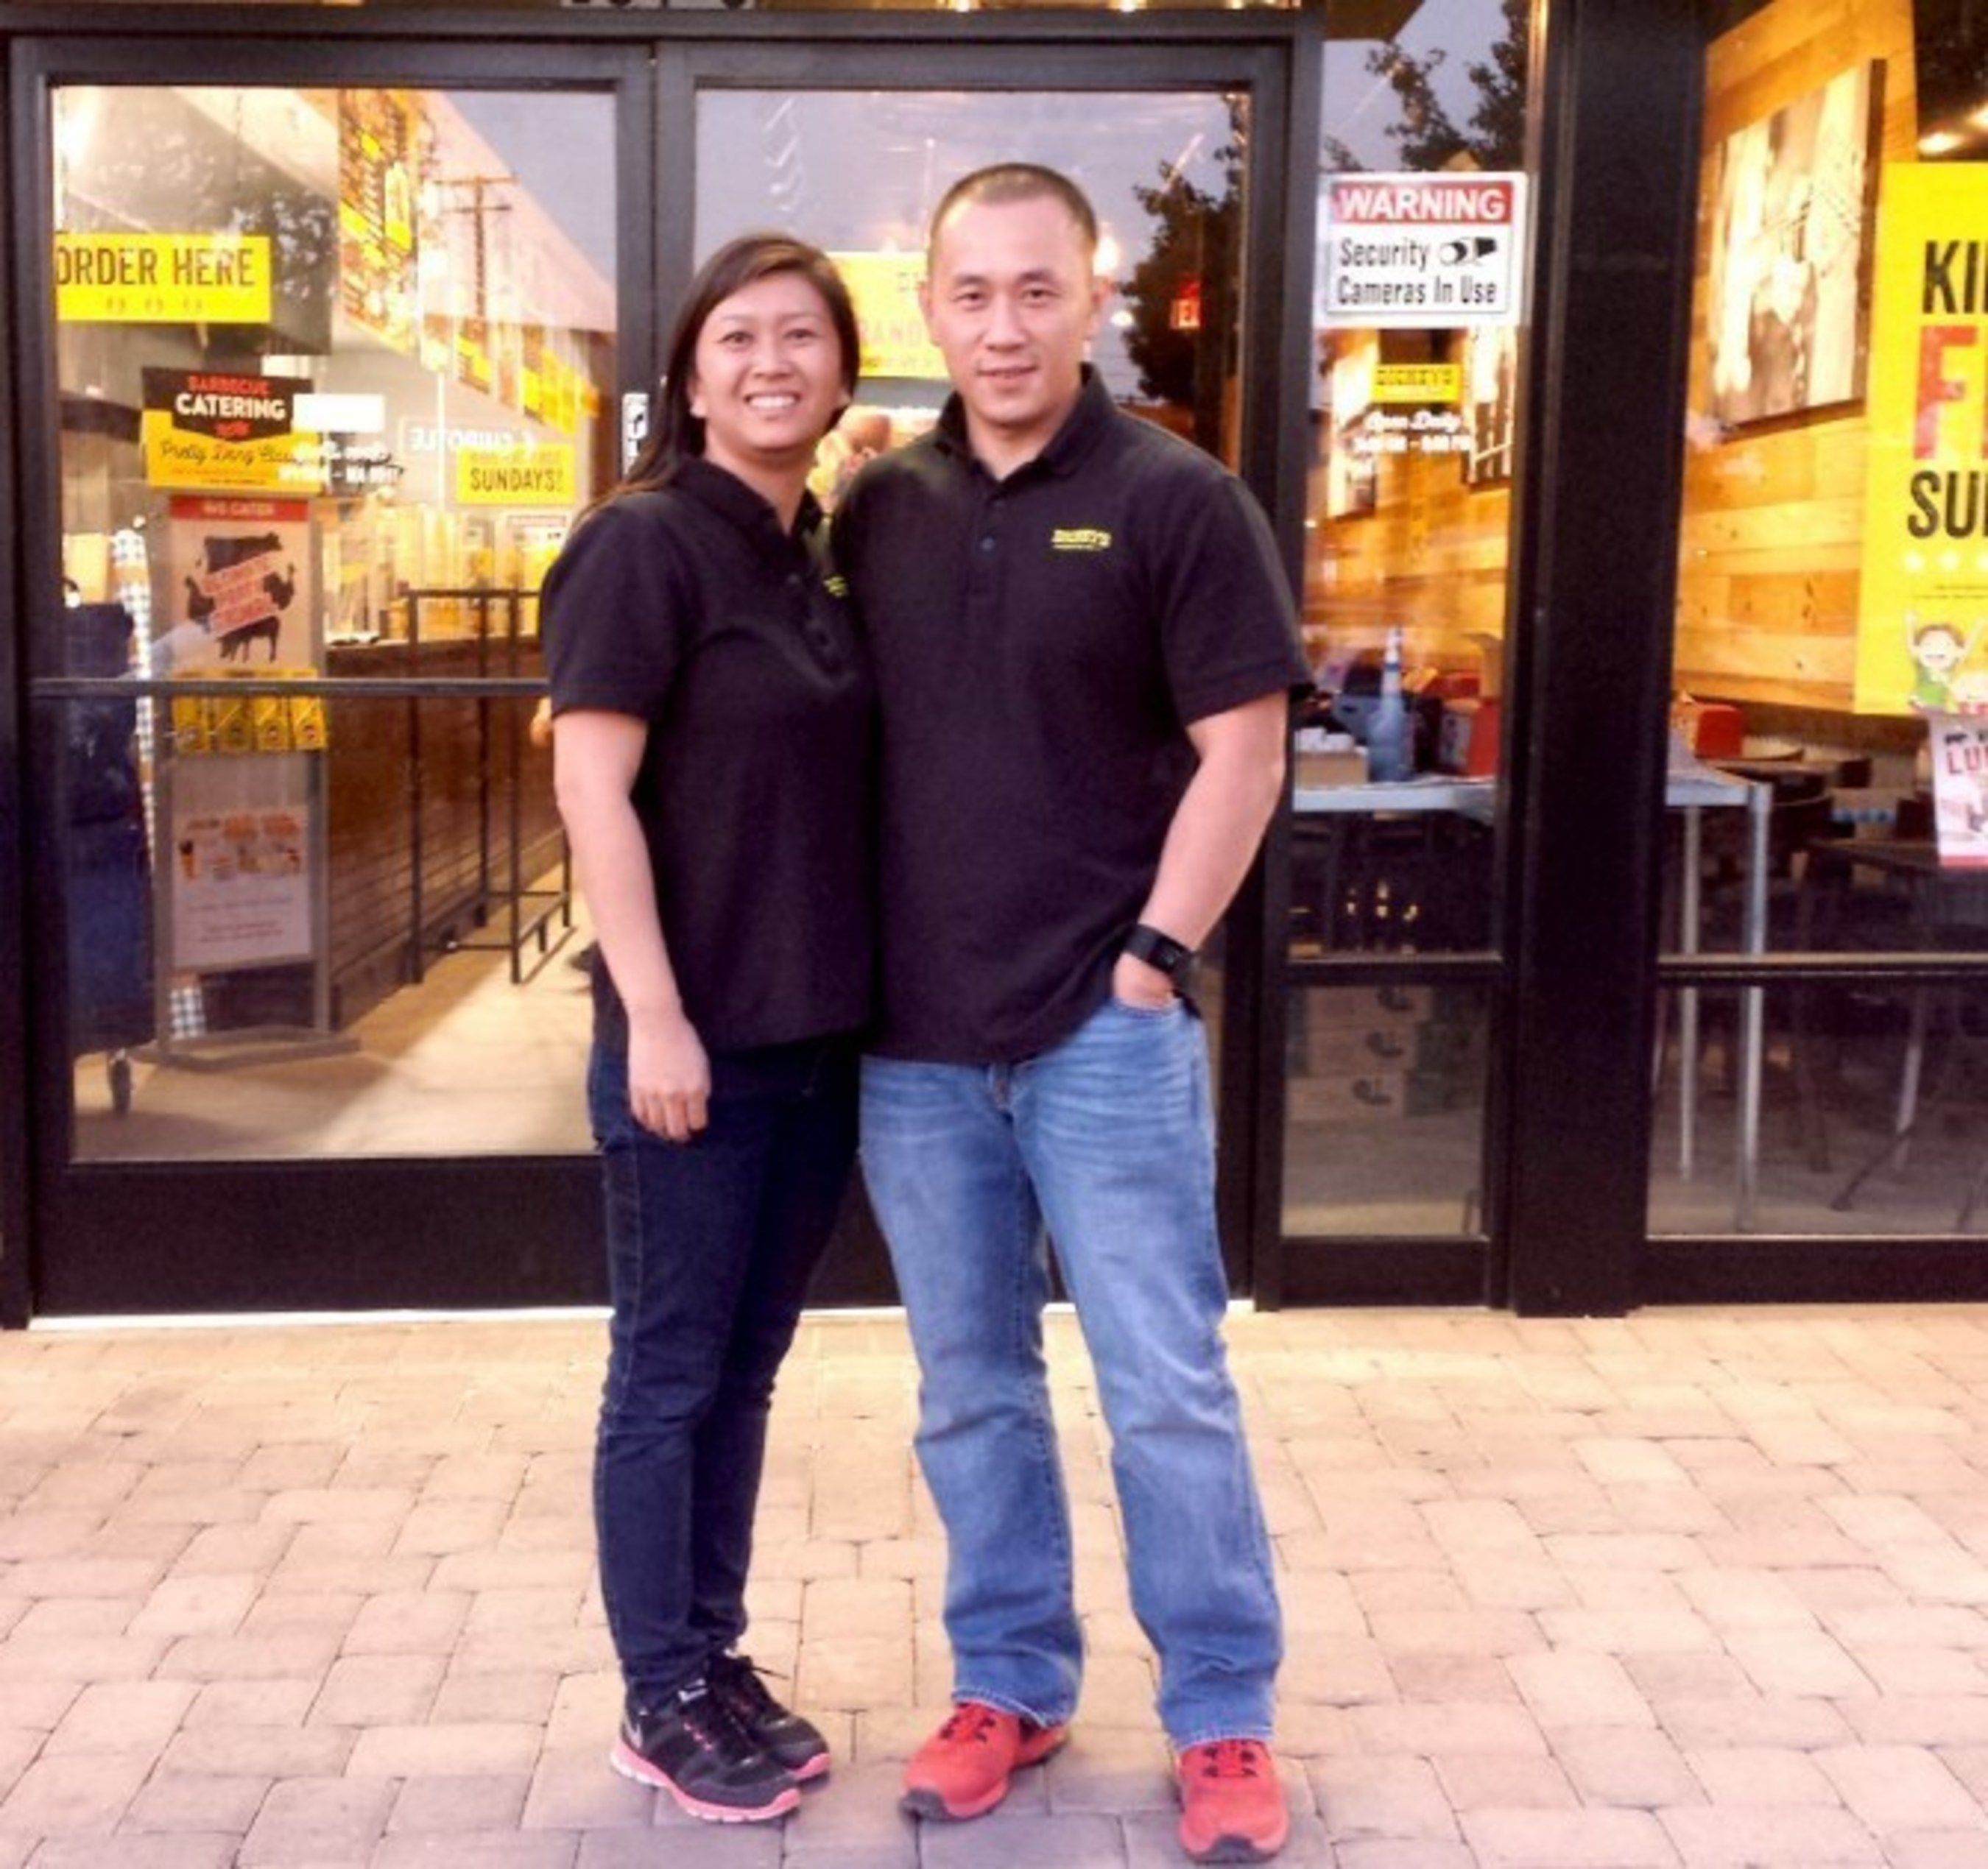 Whittier residents can grab gift cards, $2 pulled pork sandwiches, merchandise giveaways and more when Dickey's Barbecue Pit opens Thursday with a three day celebration.